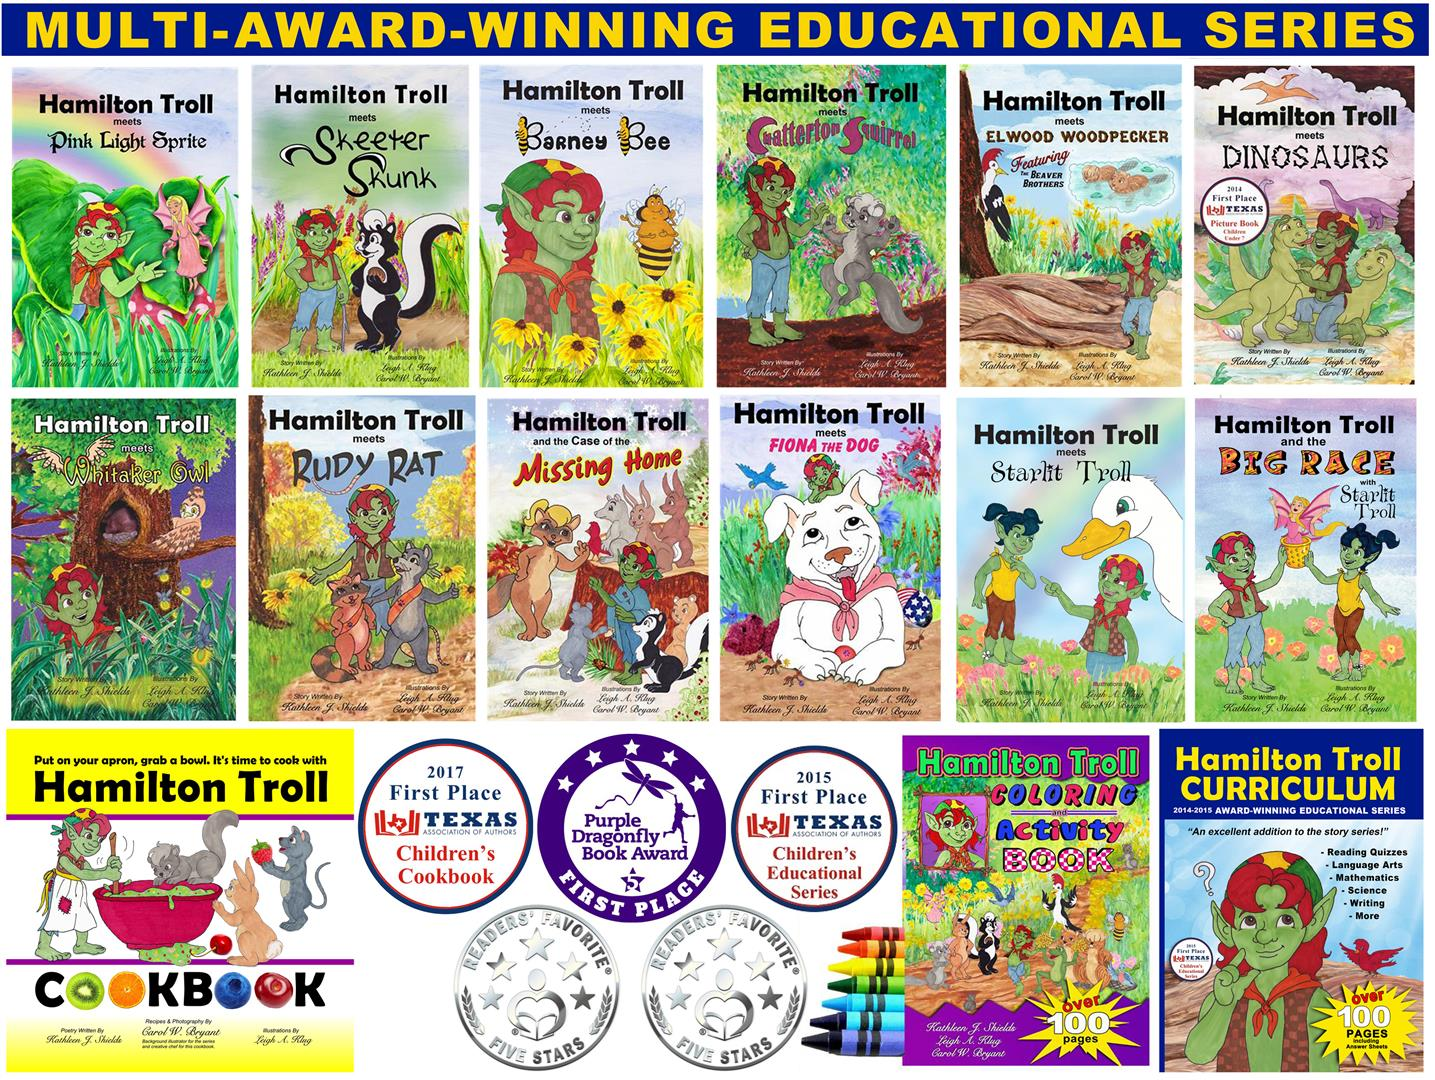 Multi-Award-Winning Educational Children's Book Series The Hamilton Troll Adventures